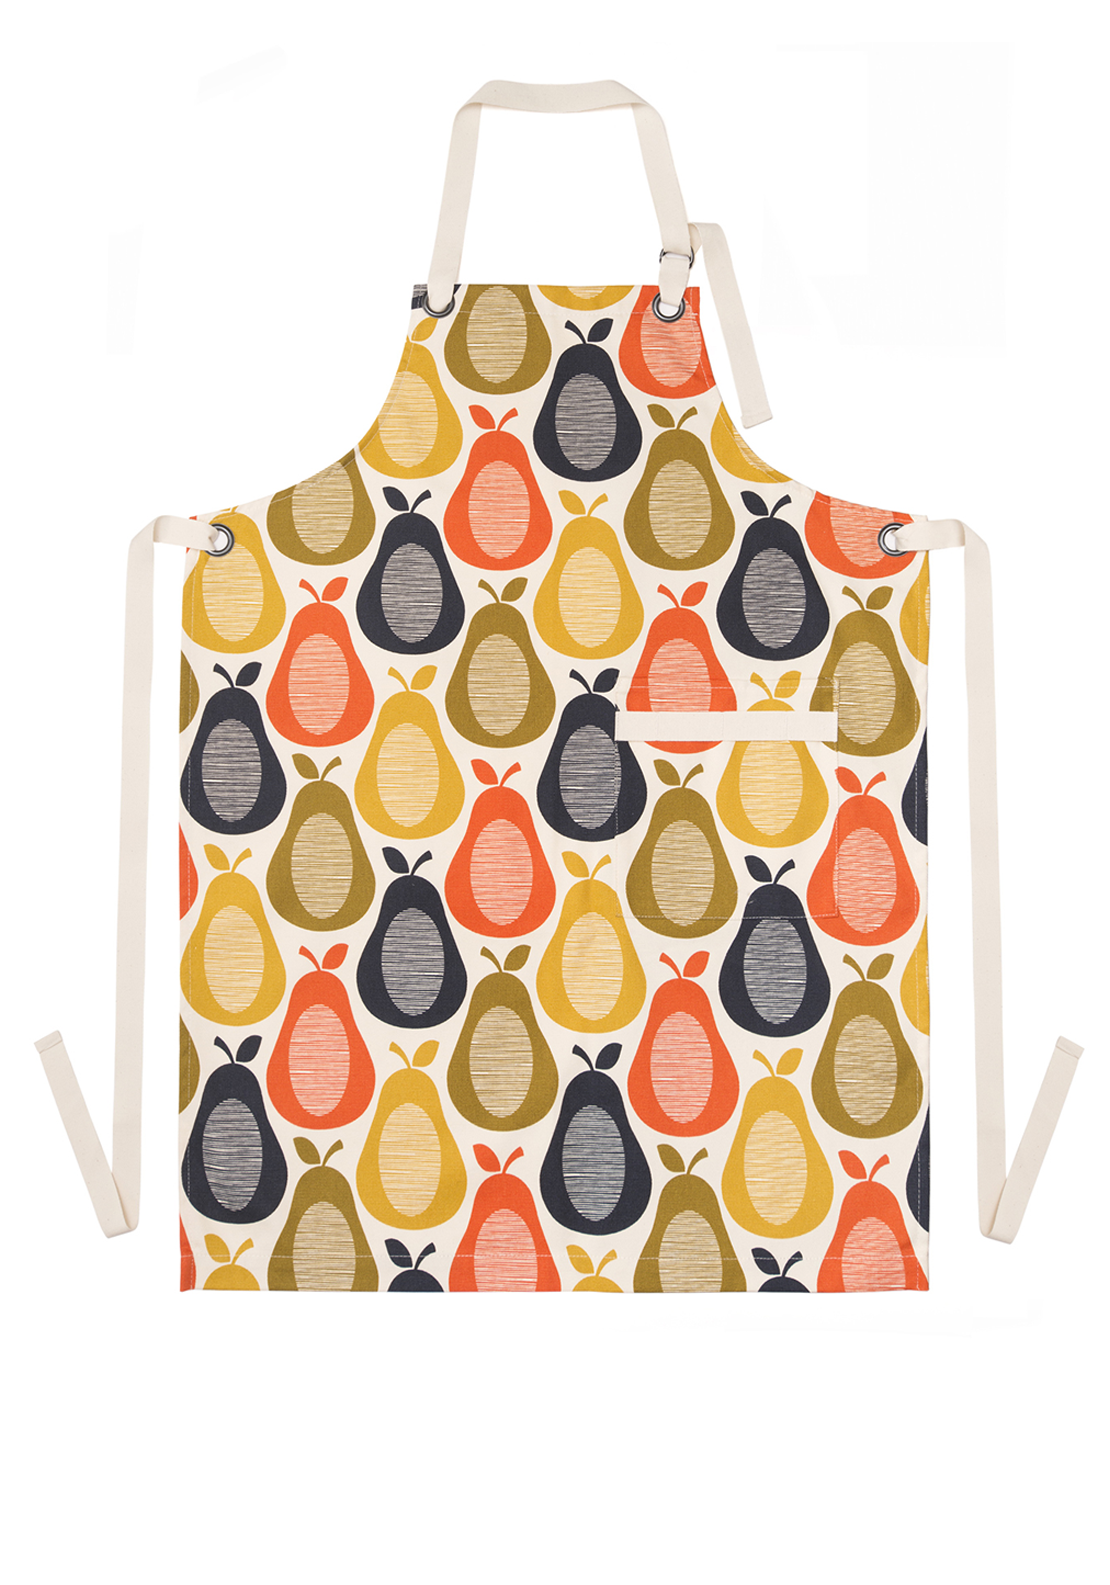 Orla Kiely Apron with Pear Print Design, Cream Multi